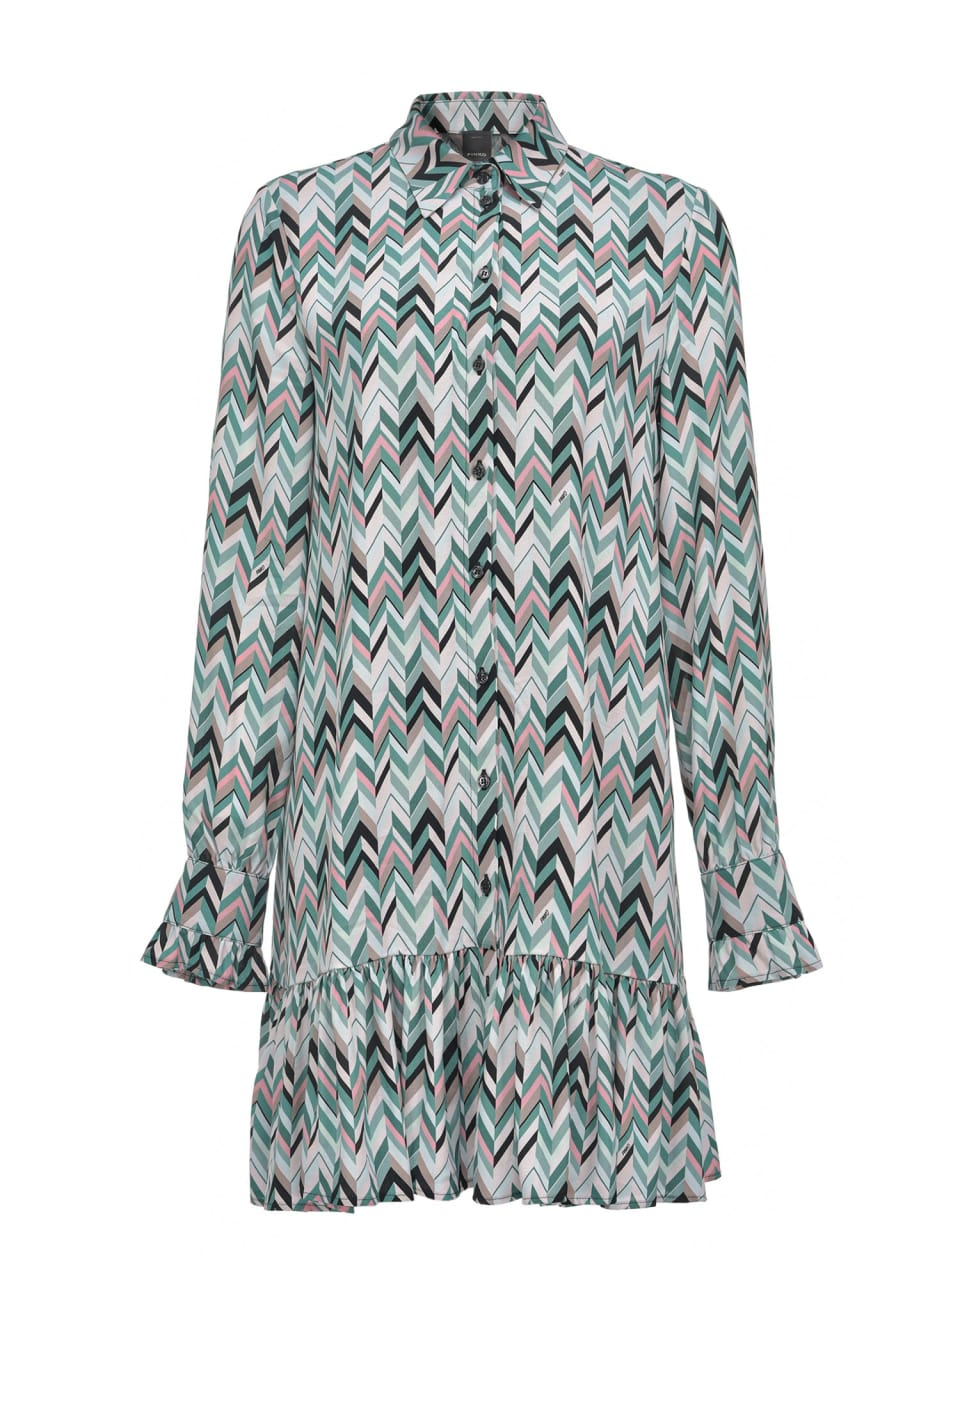 Chevron print mini shirtdress - Pinko